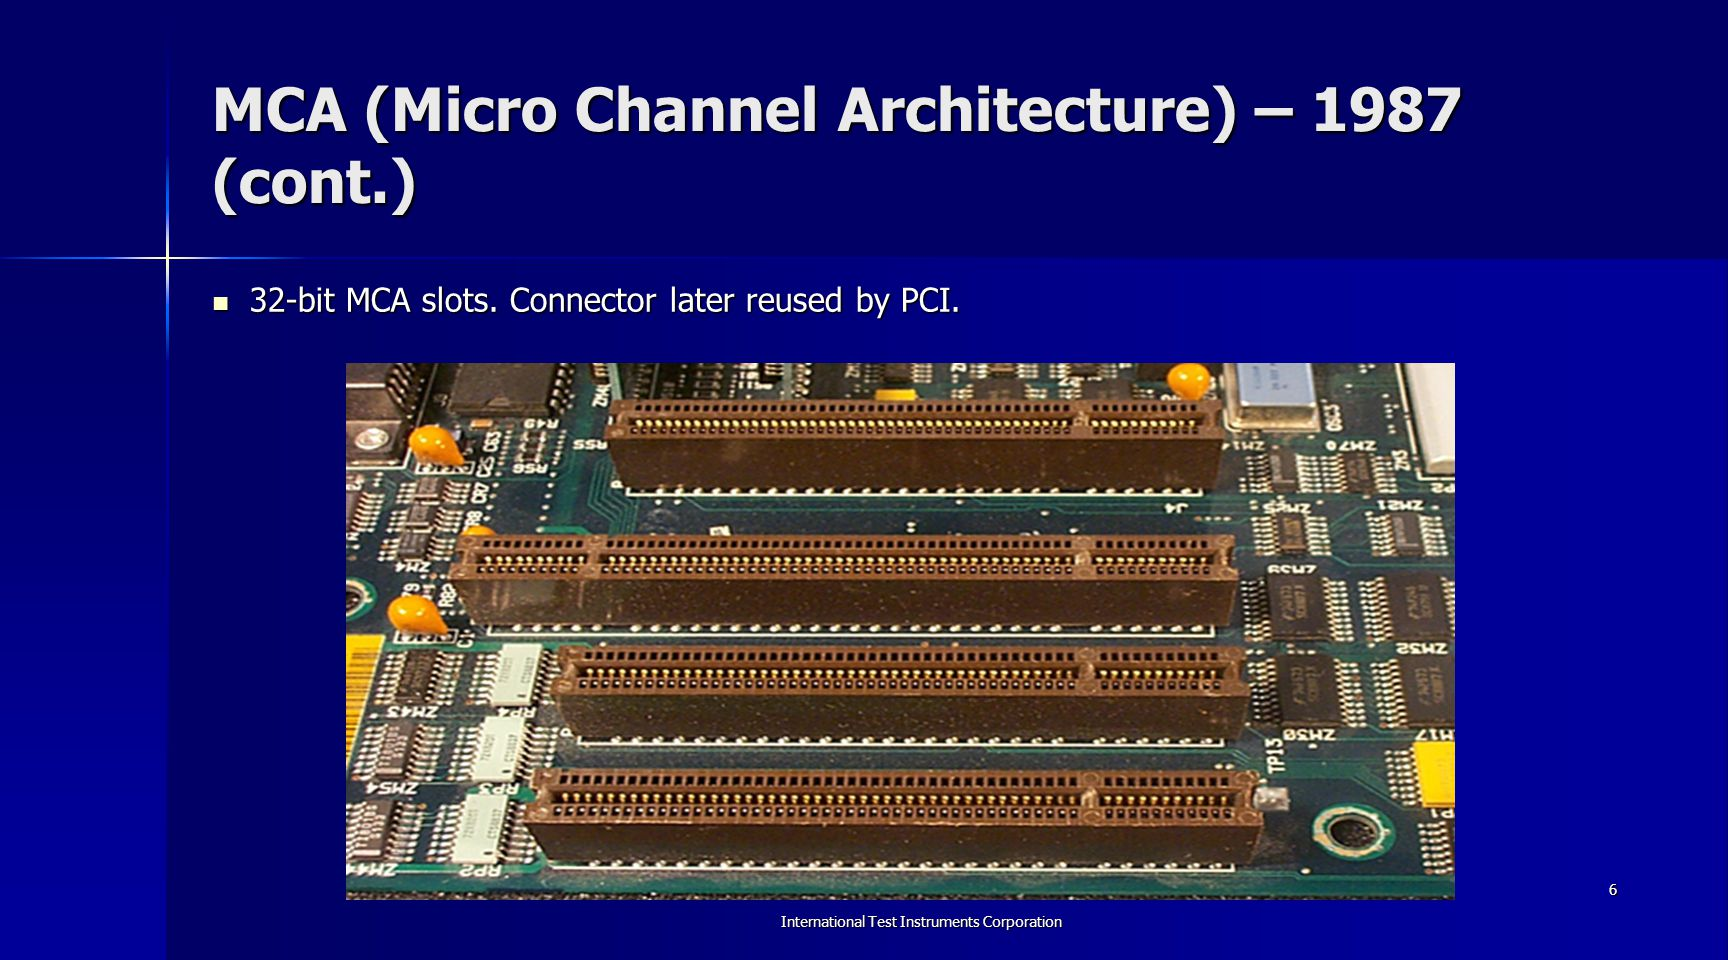 MCA (Micro Channel Architecture) – 1987 (cont.)